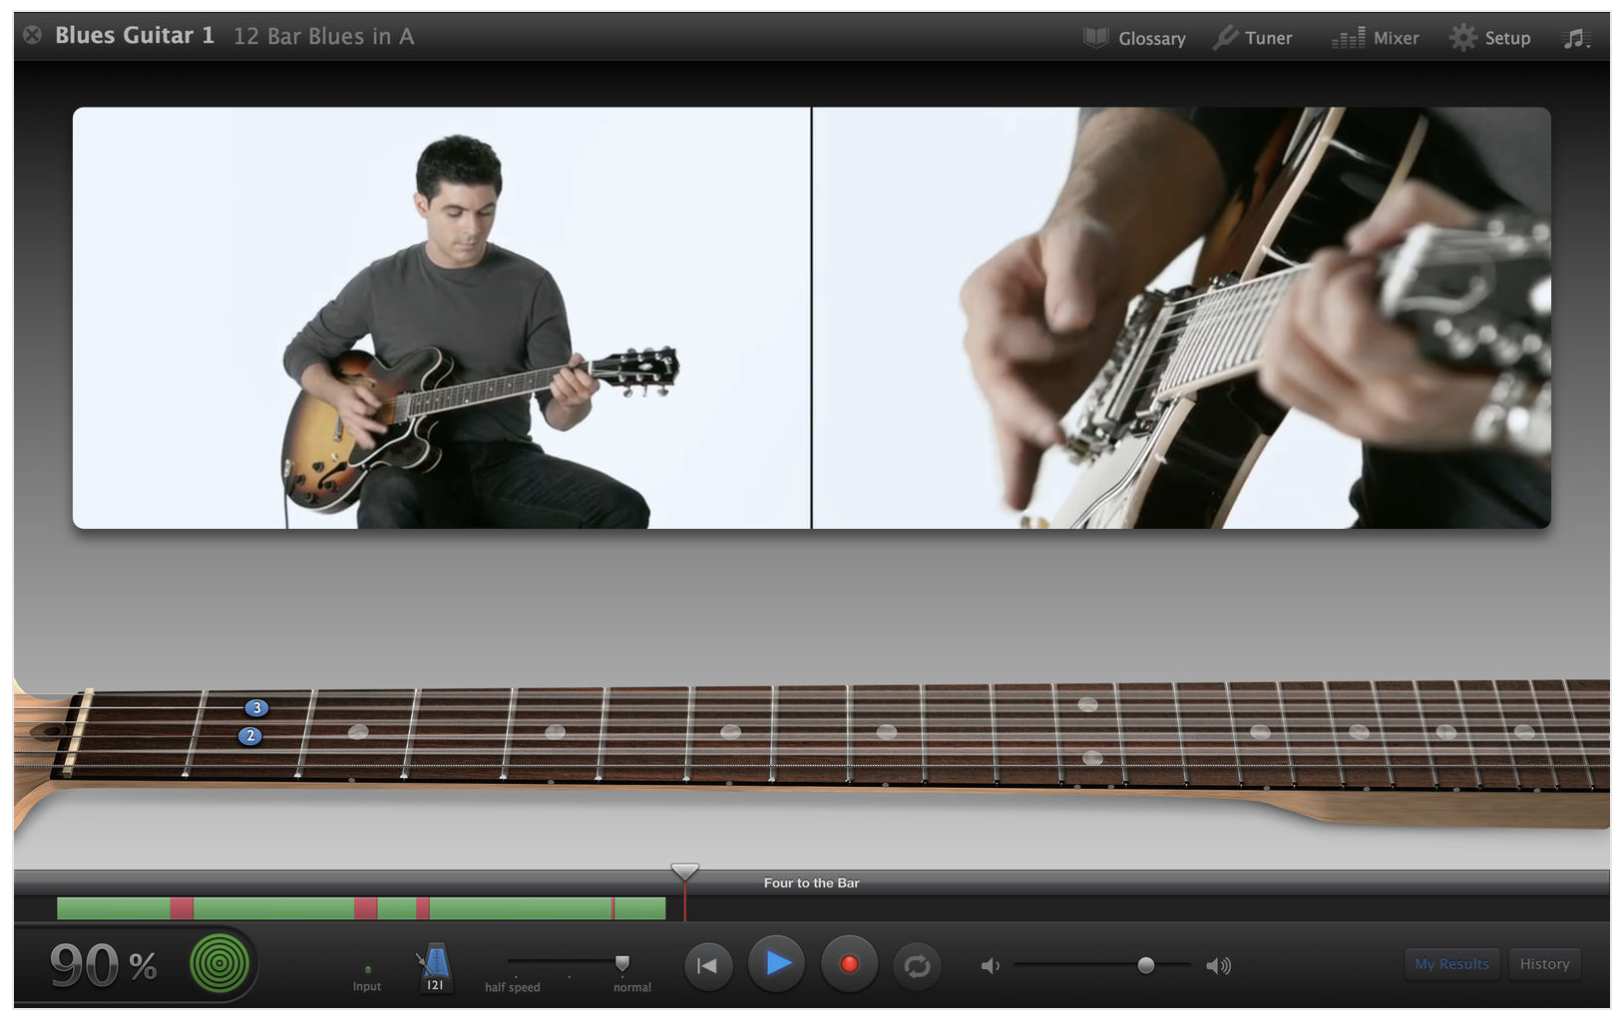 Apple updates GarageBand for Mac with new loops, sound